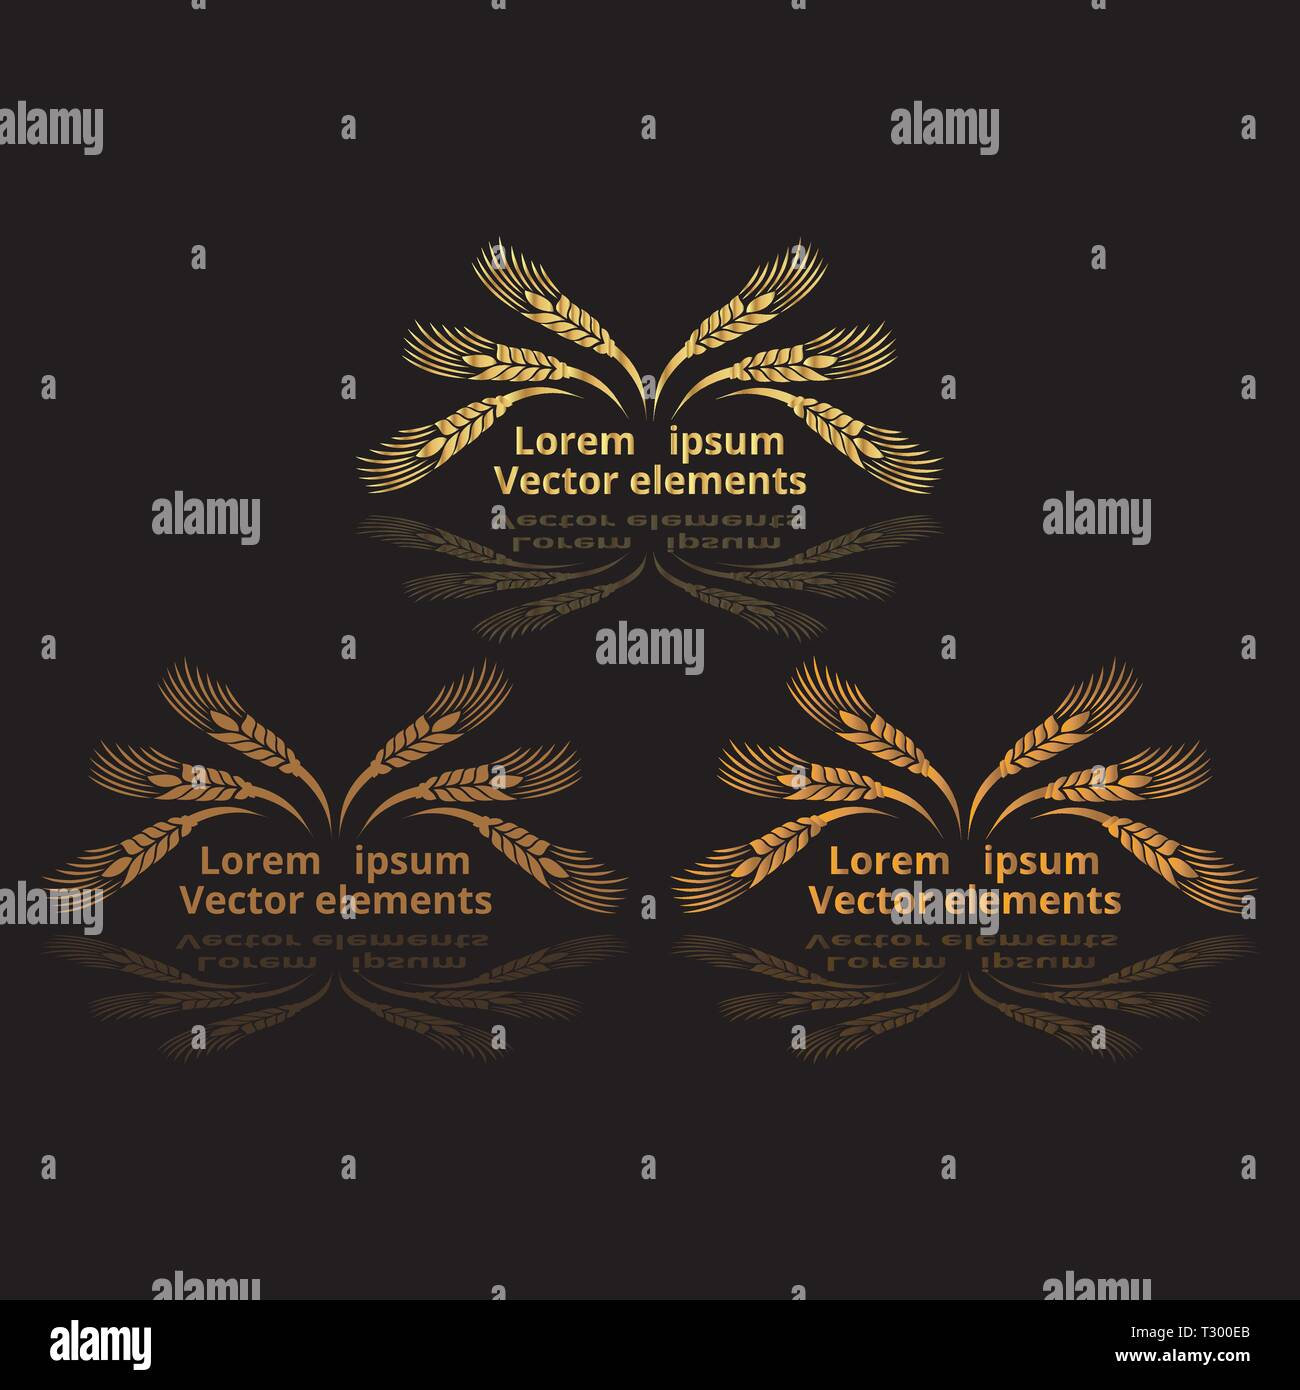 Wheat ears, oats or barley three vector    logotypes set golden on black background. Eco natural ingredient element, healthy food or agriculture, brea - Stock Image